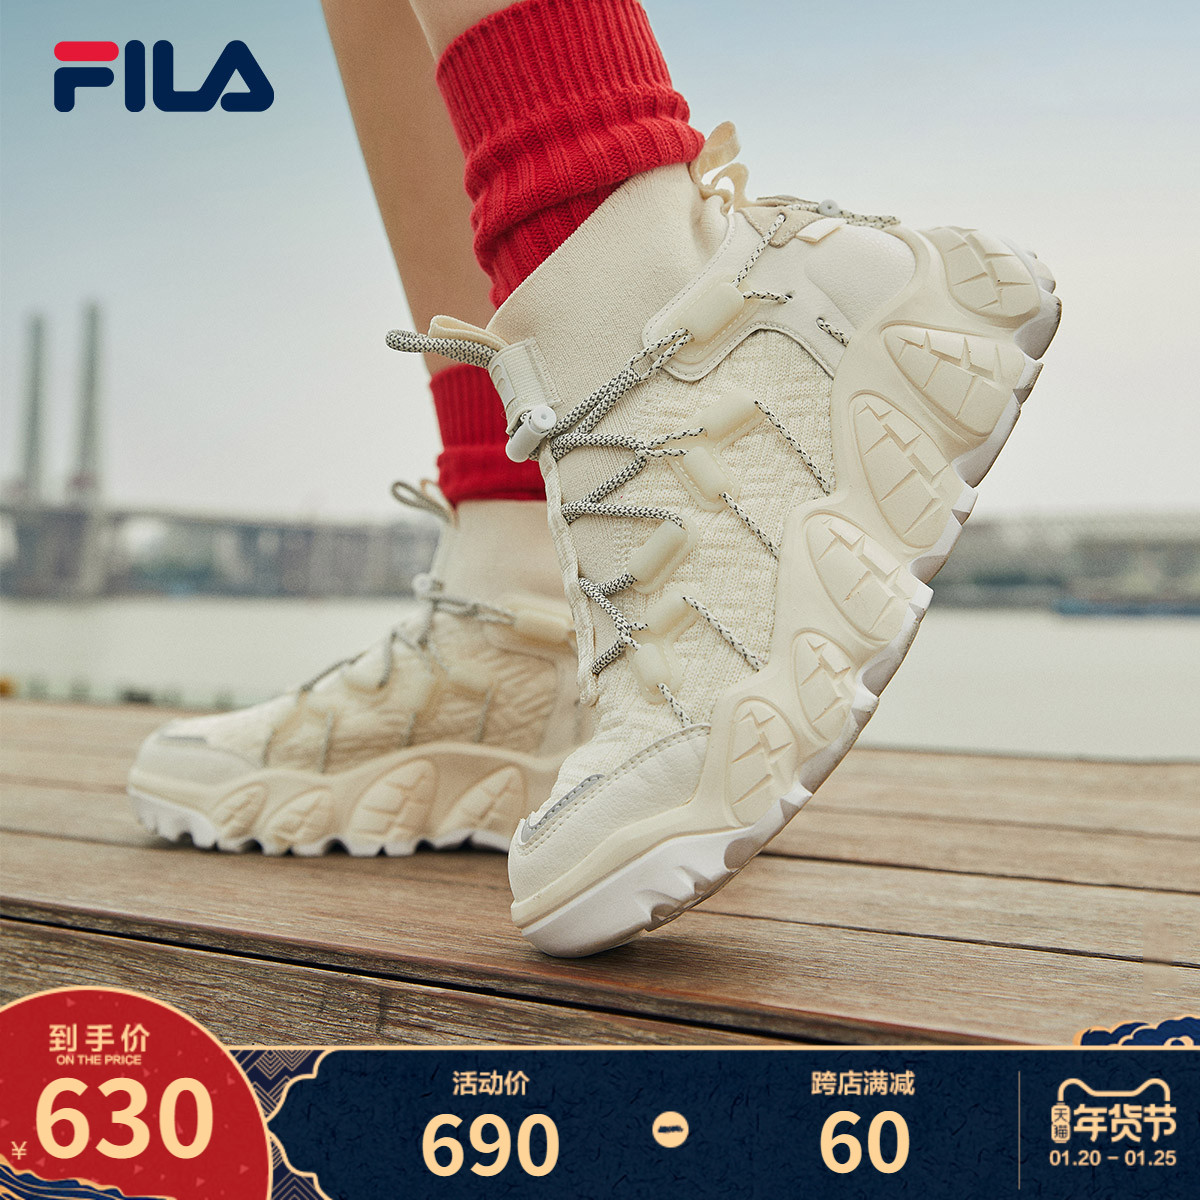 FILA Fila official Gao Yuanyuan same style old shoes women 2020 winter new high-top sports Apennines